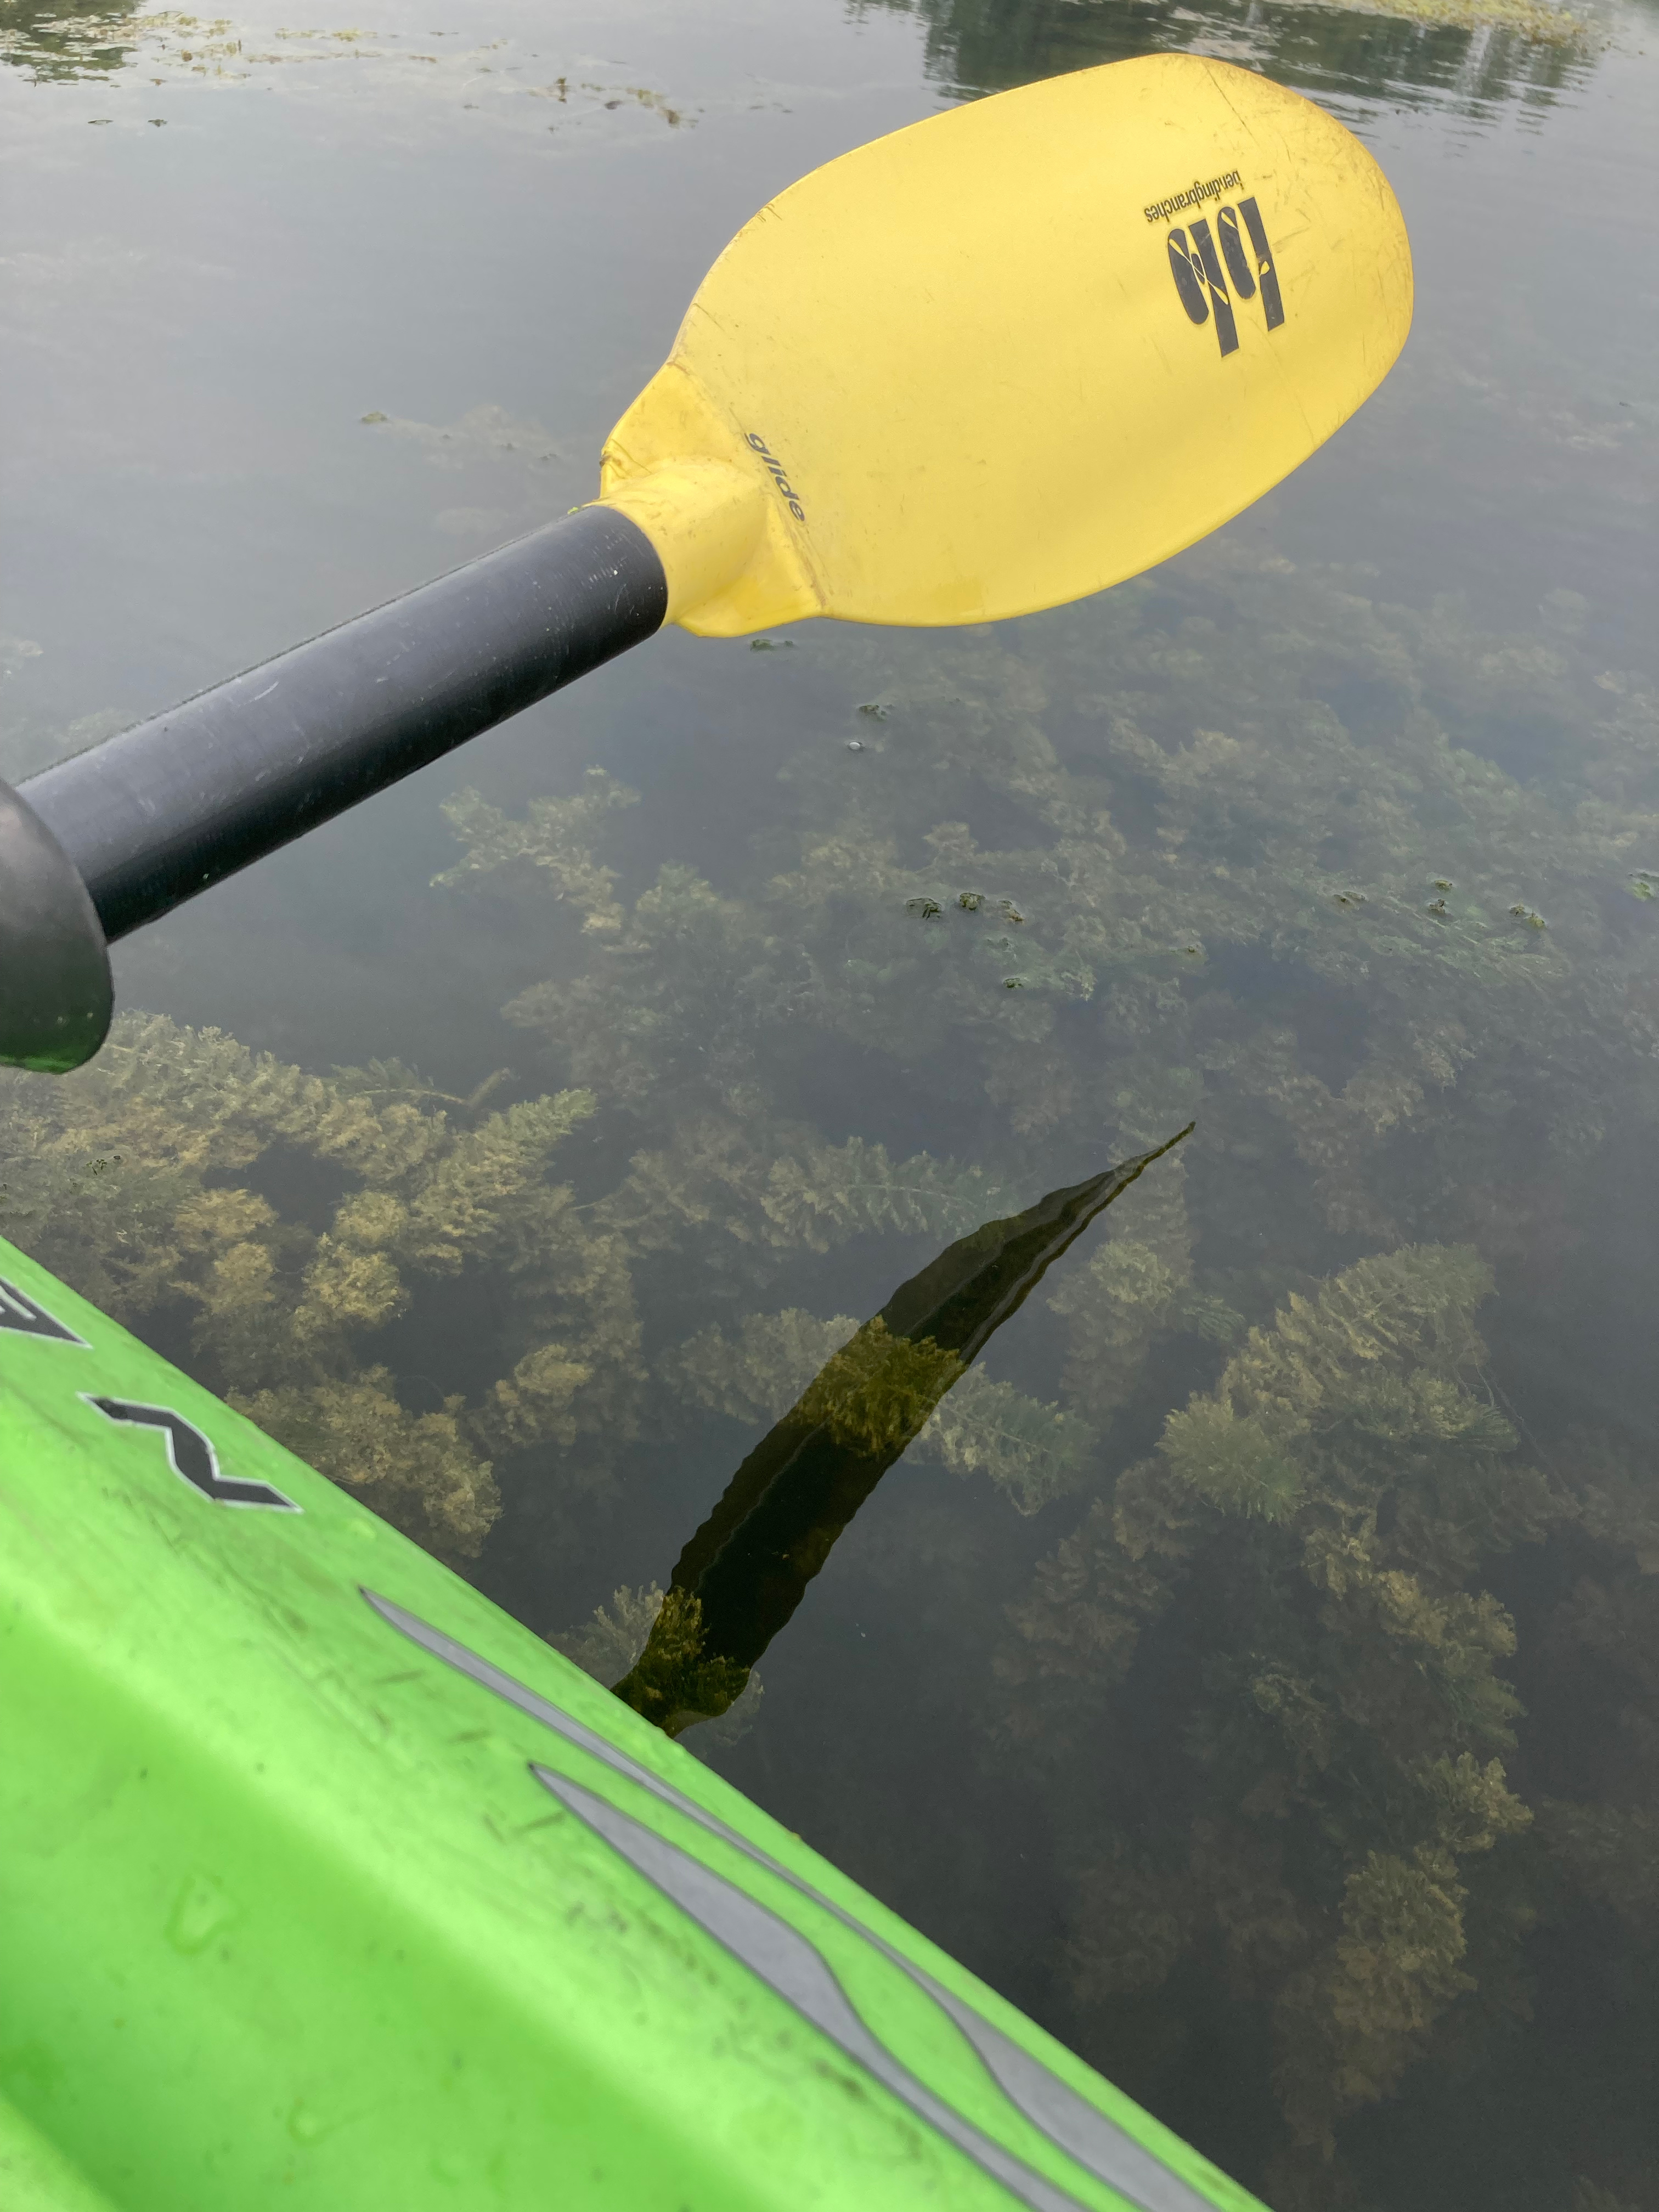 an oar overlooking lake water with green plant life